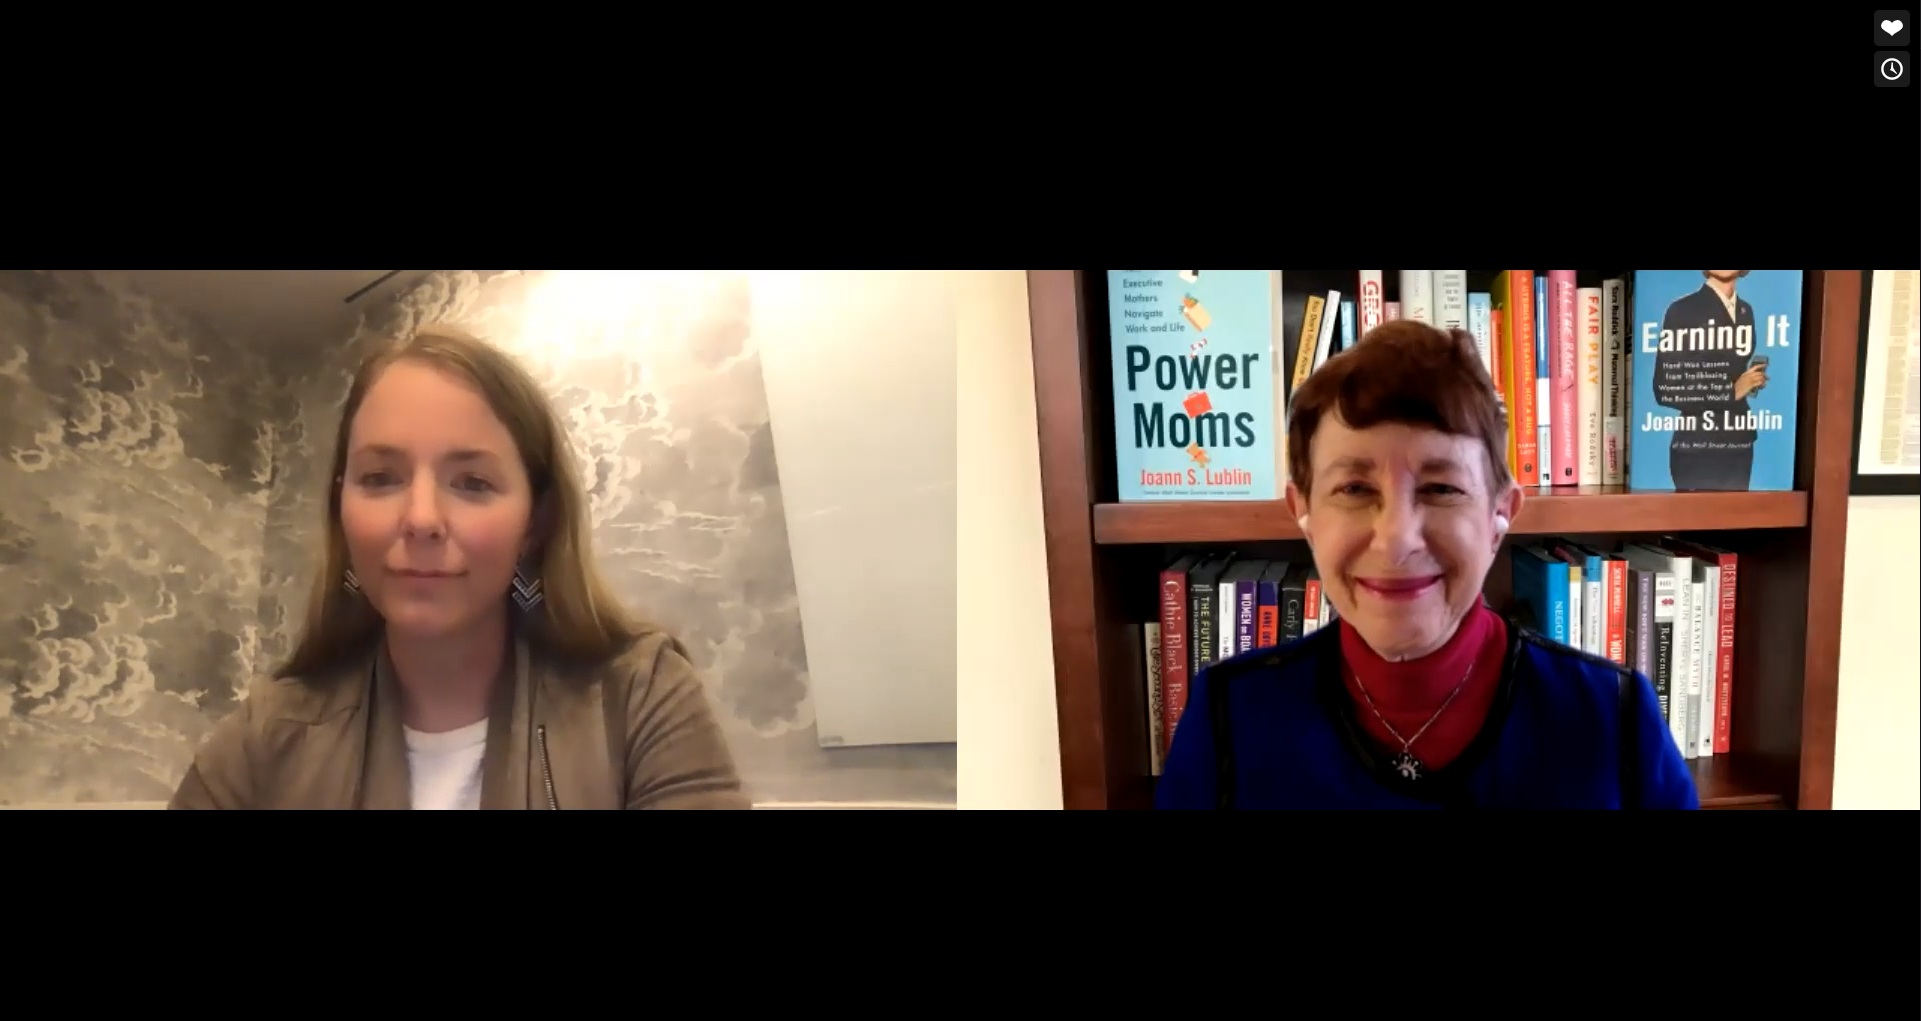 5 Key Takeaways from Our Conversation with Joann Lublin